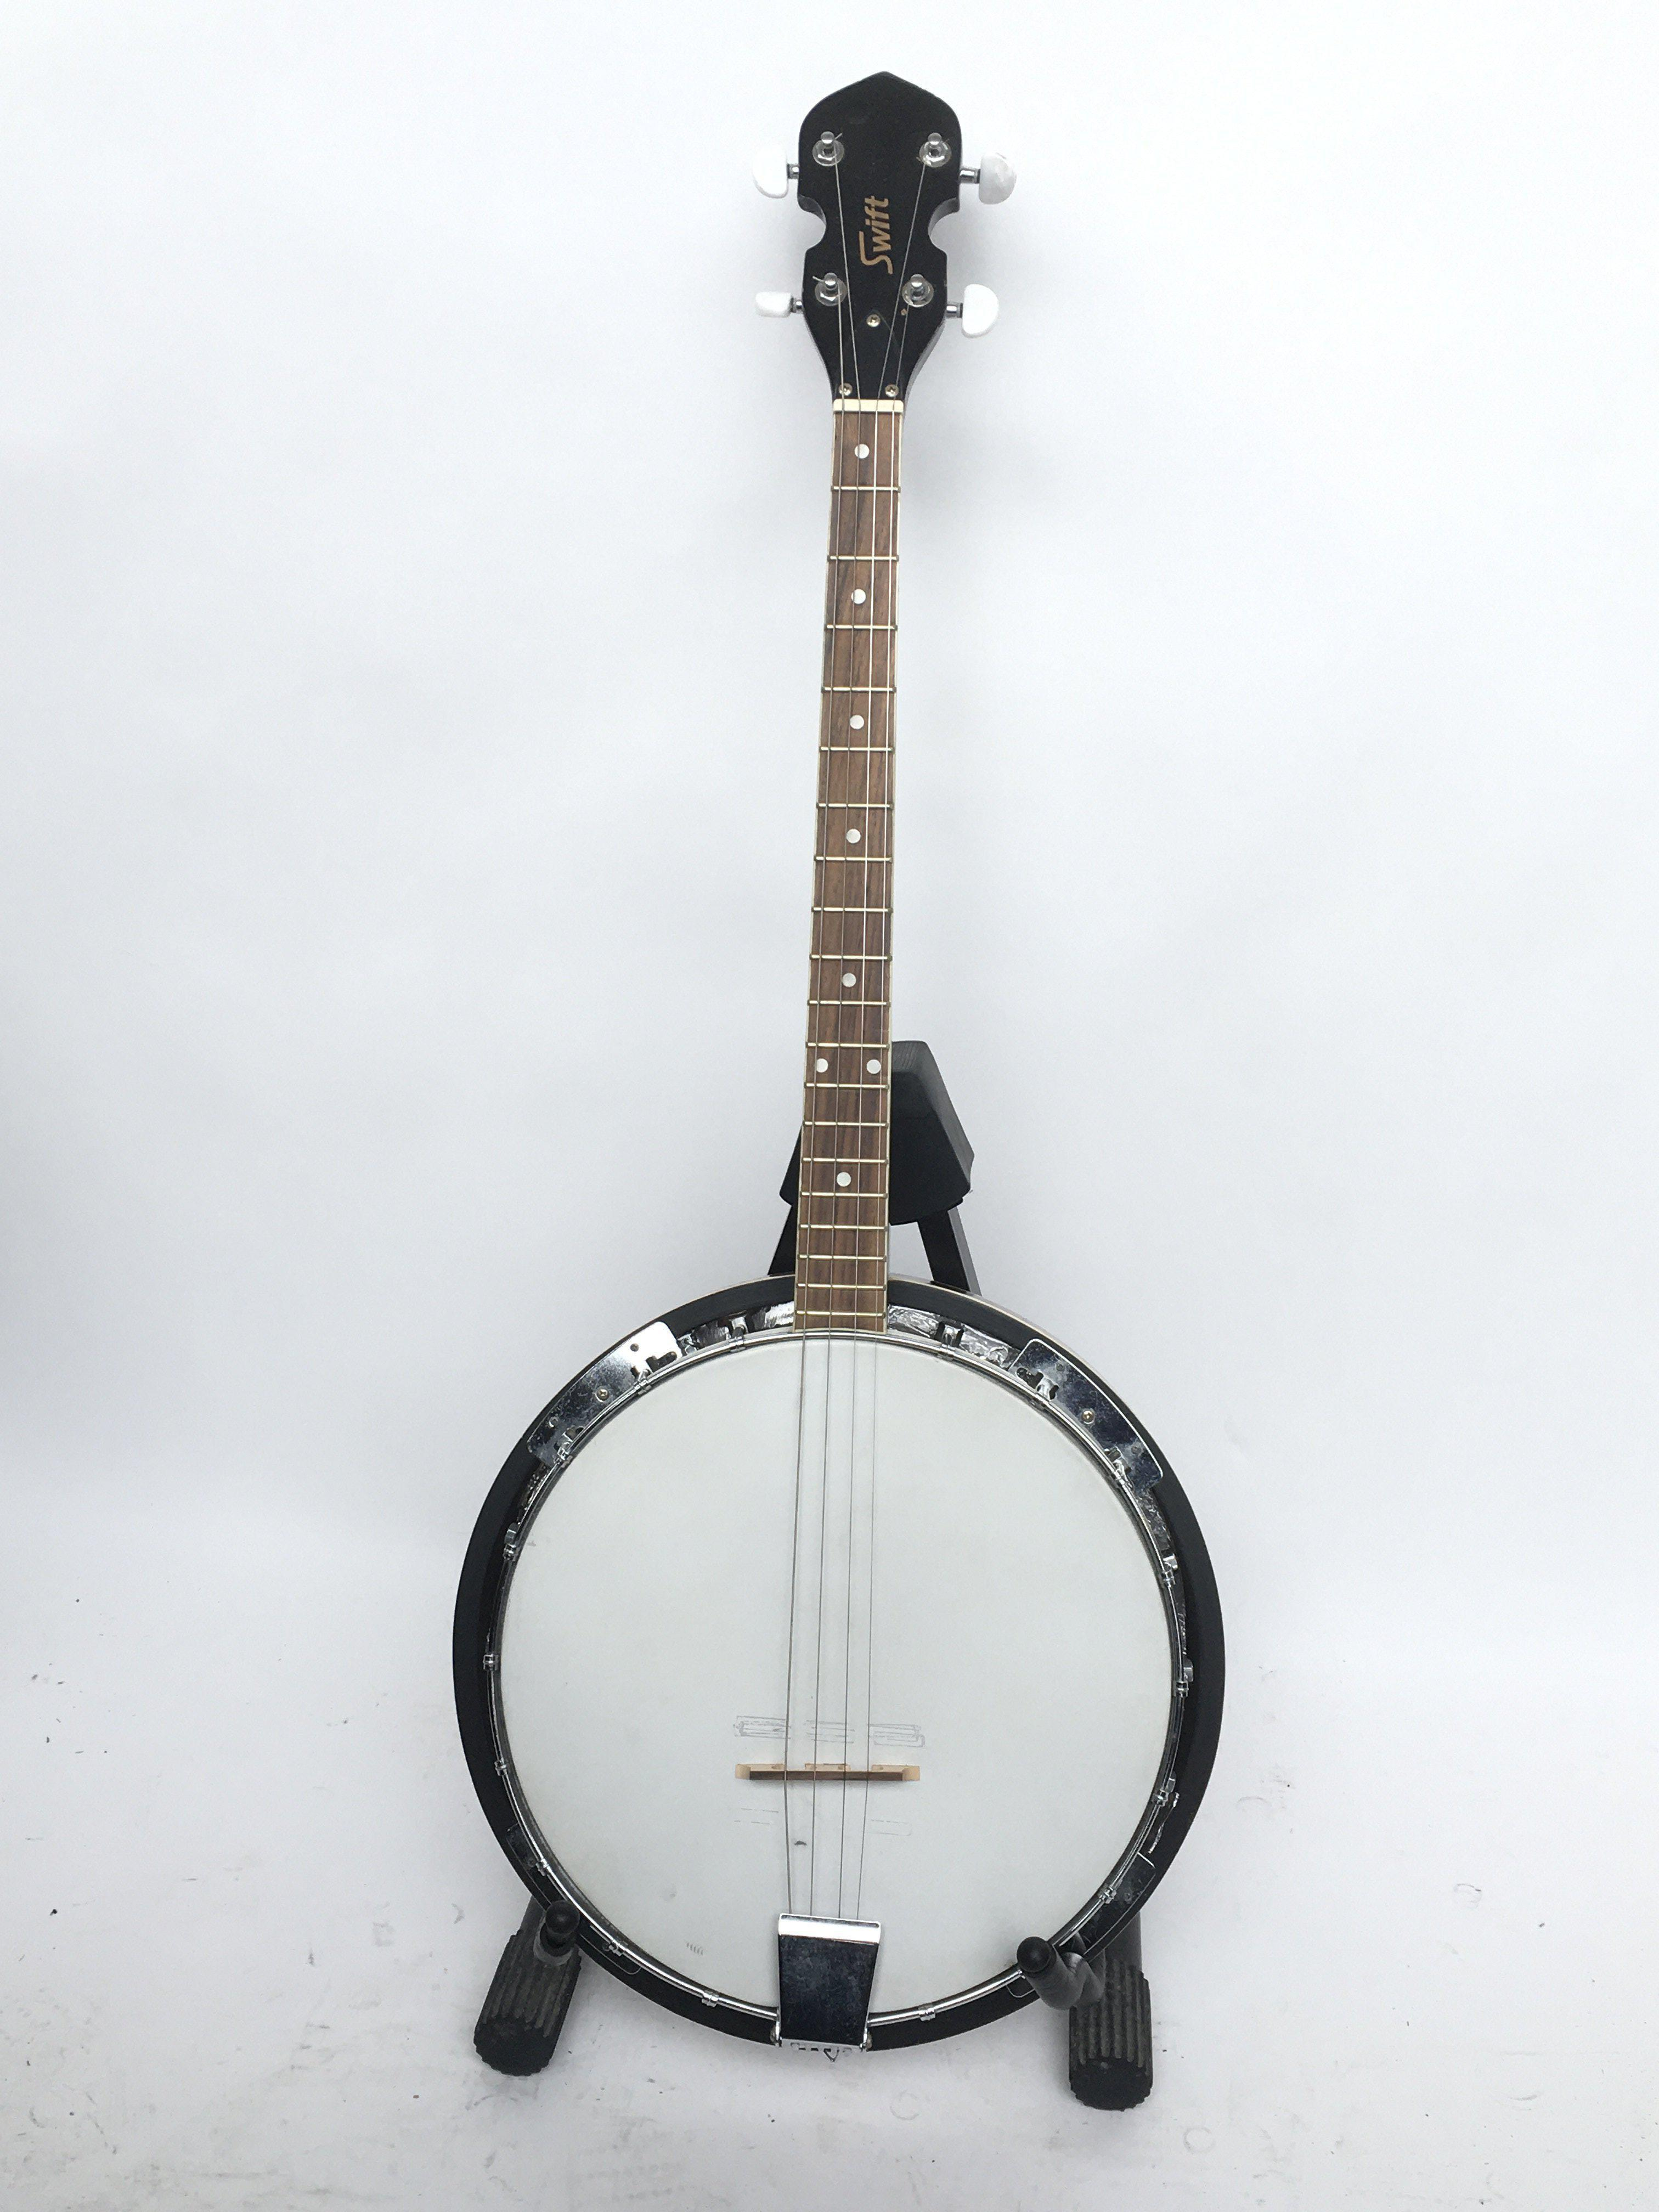 A Swift four string banjo with soft carry case.